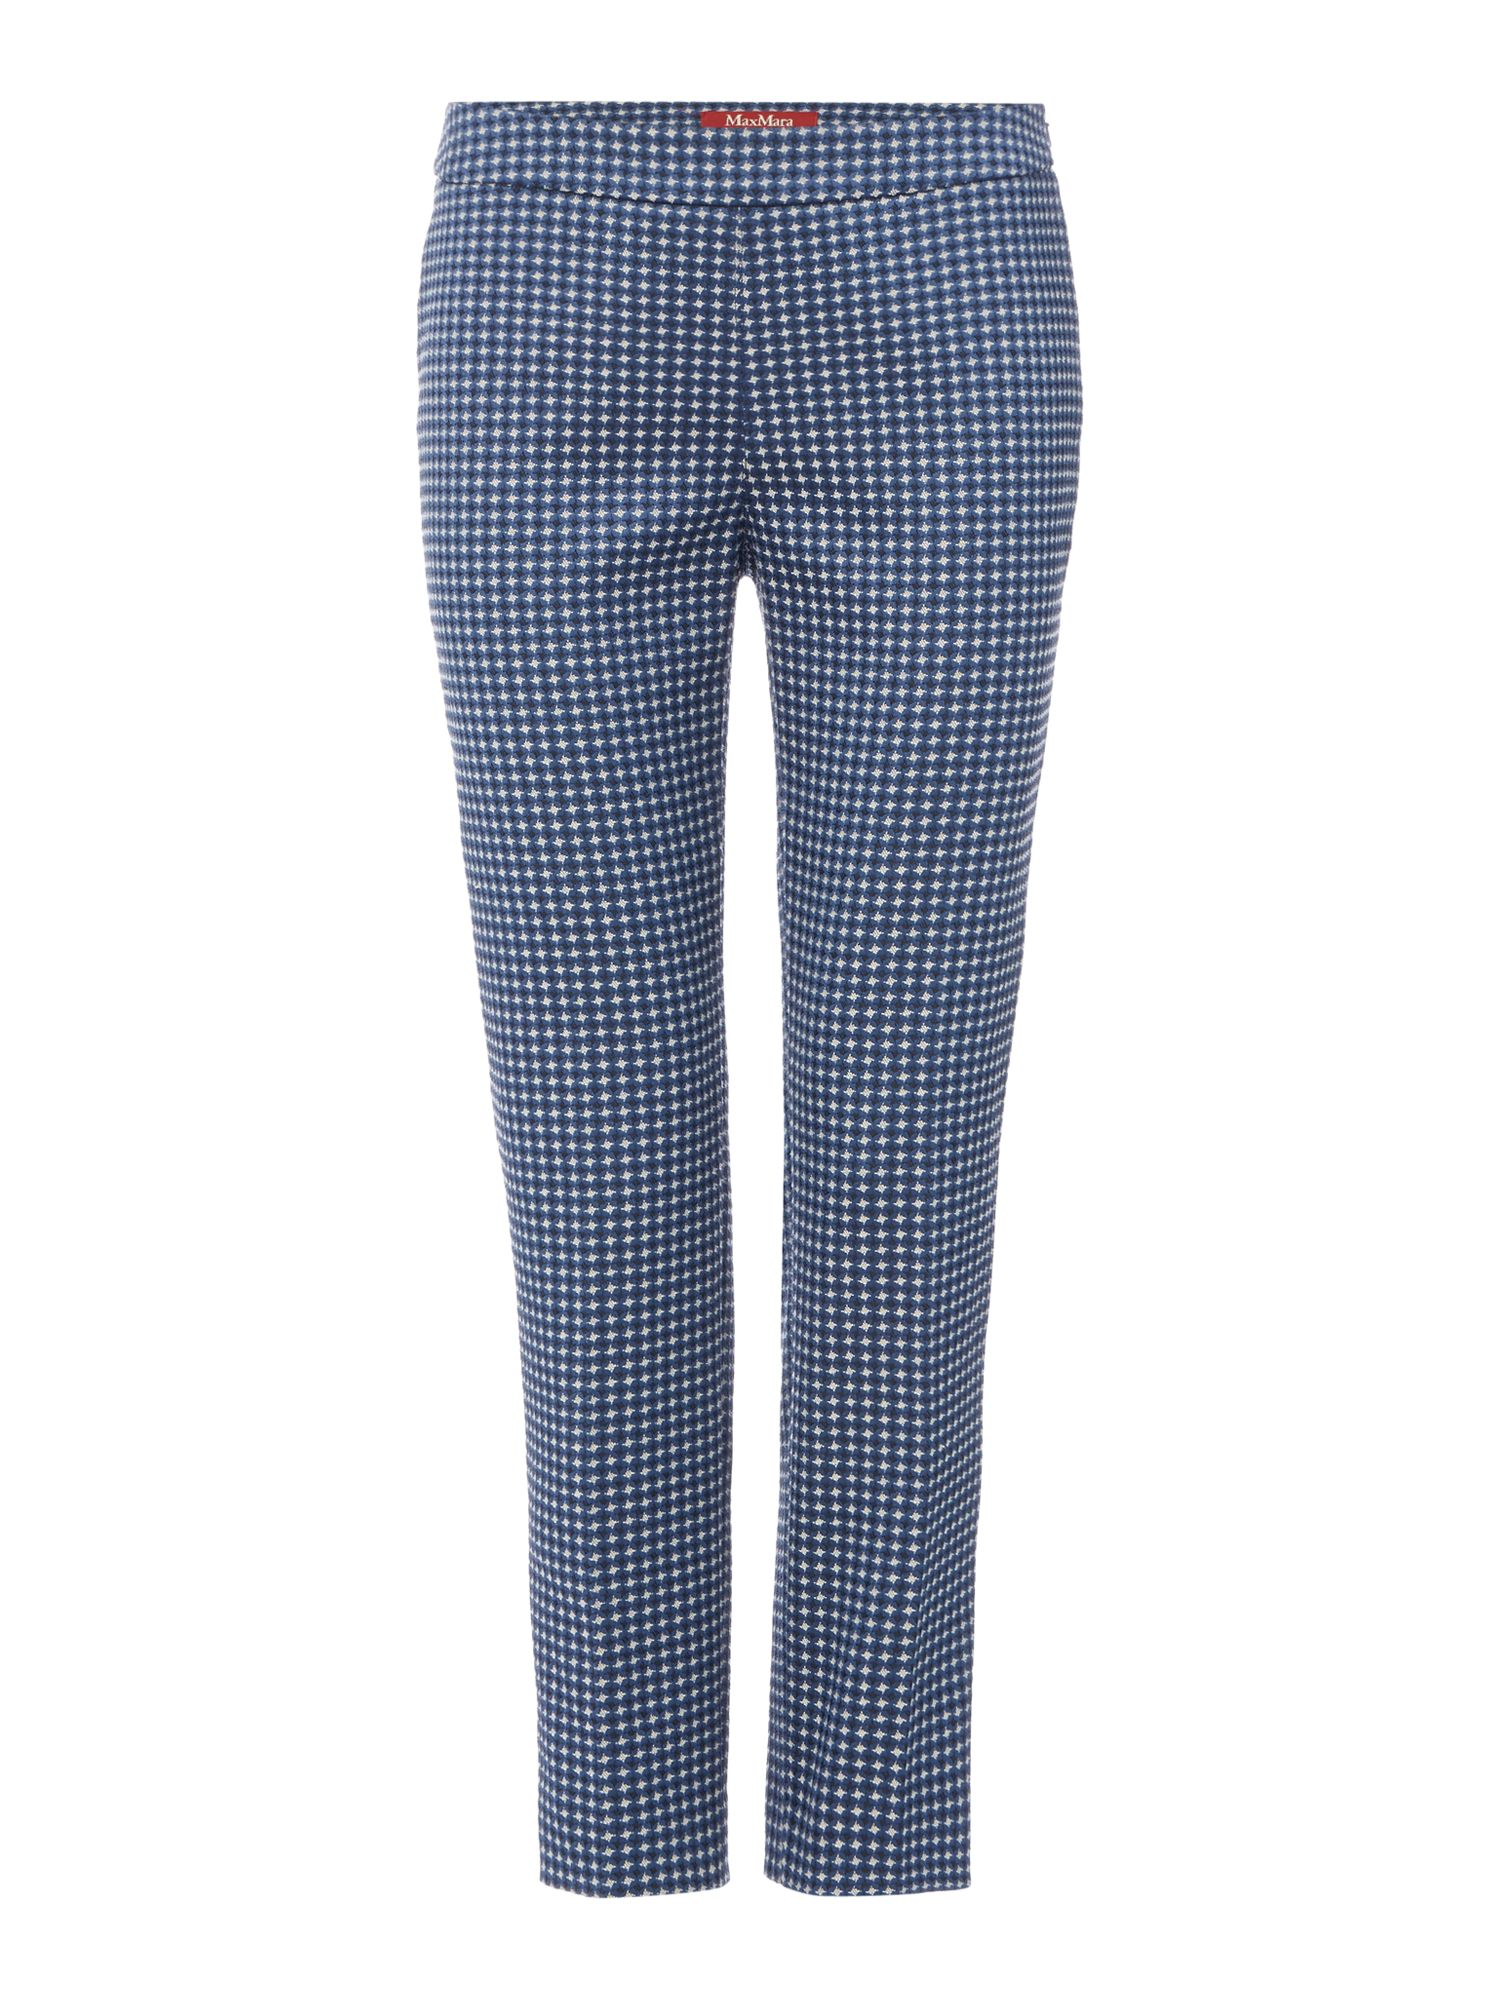 Max Mara Studio Lerici navy printed slim fit trouser, Blue